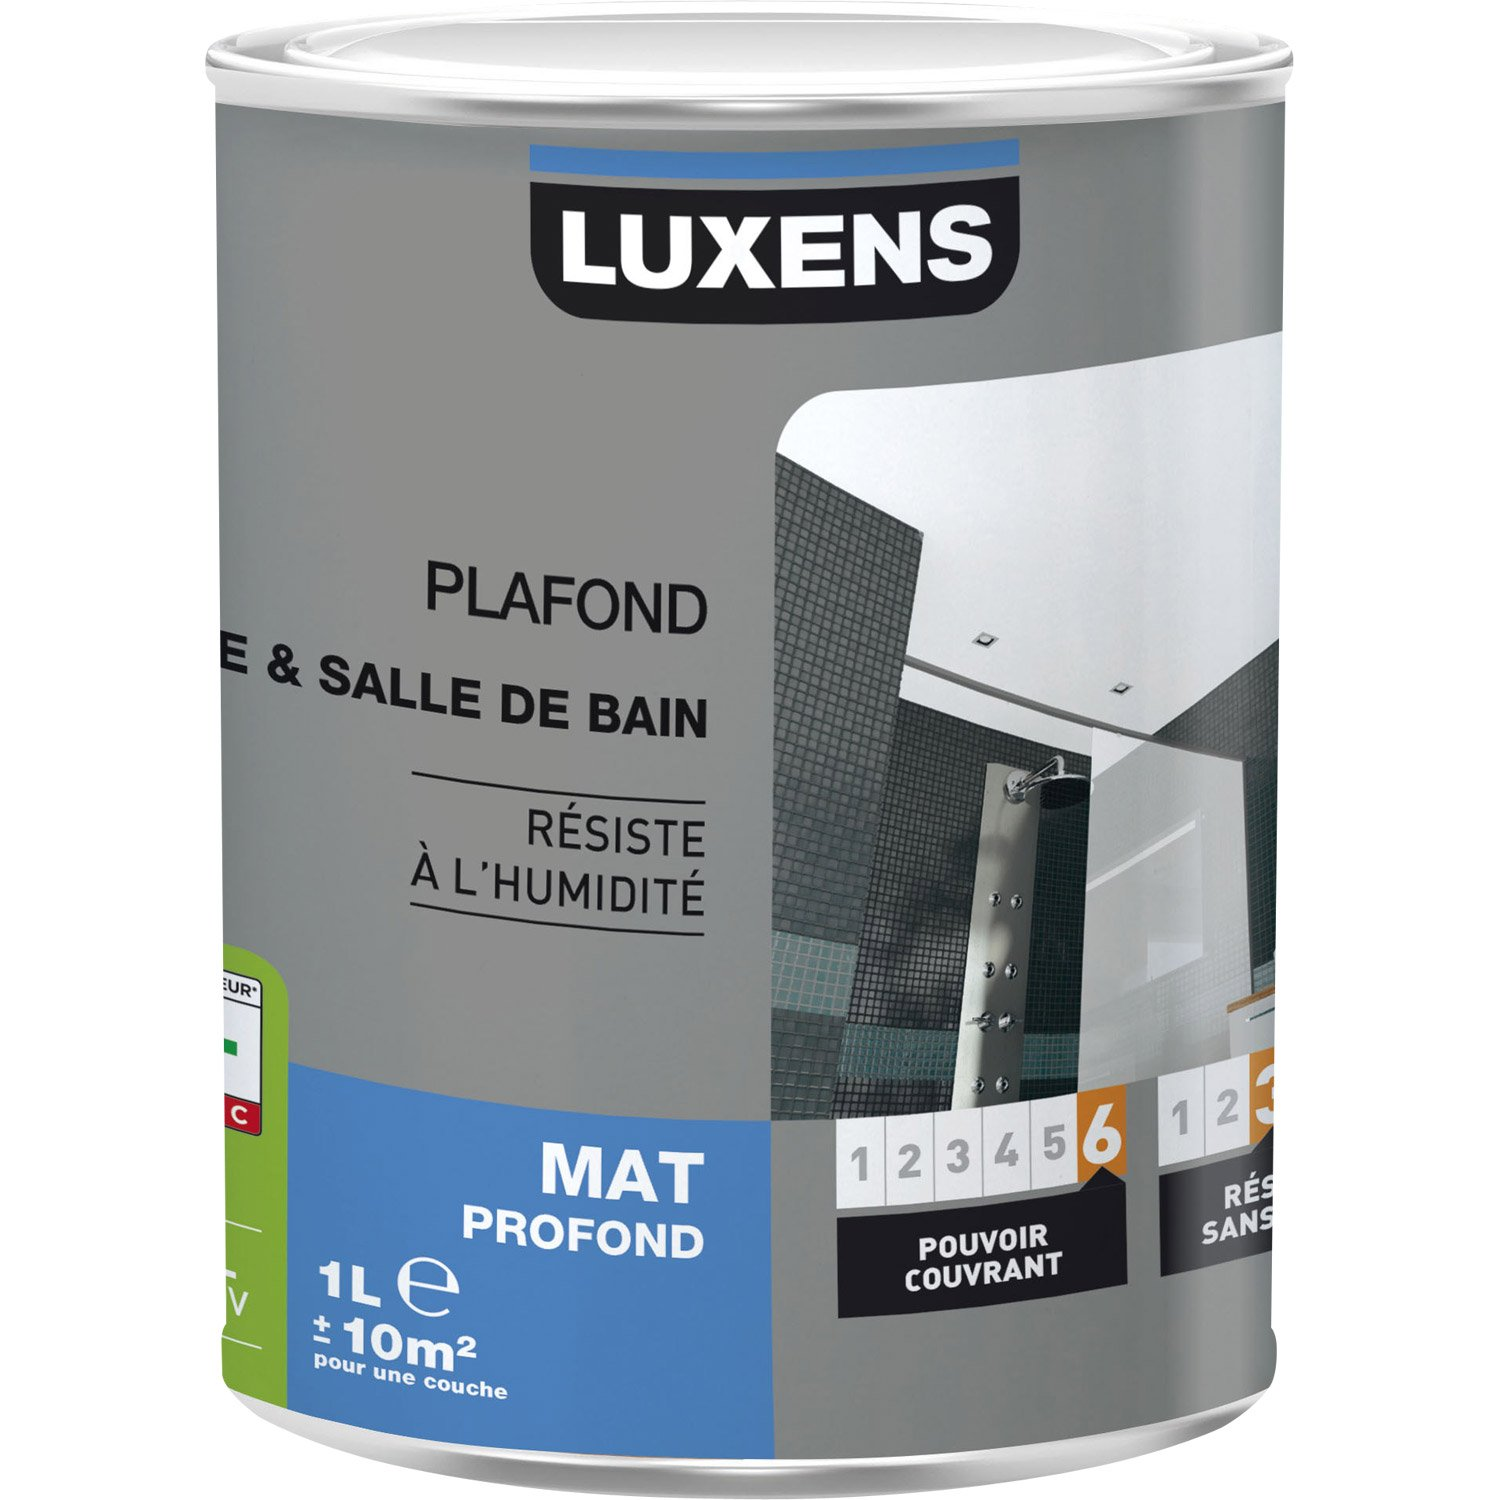 peinture blanche plafond plafond cuisine et bains luxens mat 1 l leroy merlin. Black Bedroom Furniture Sets. Home Design Ideas